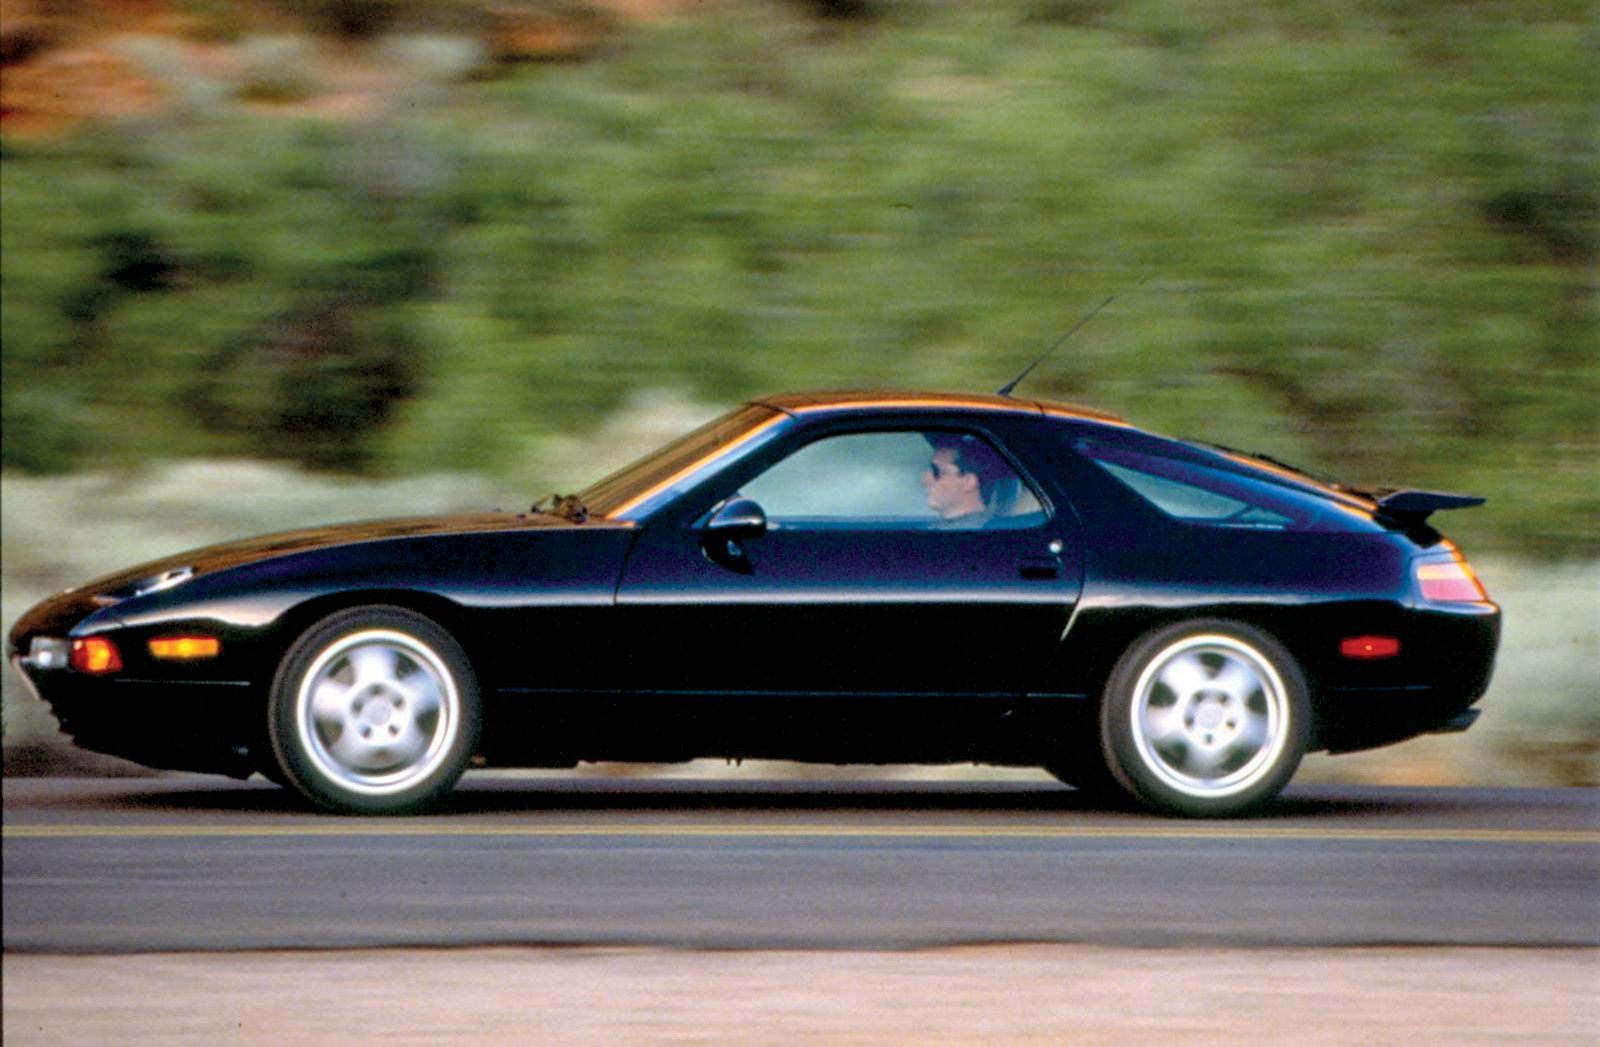 1995 928 GTS at speed